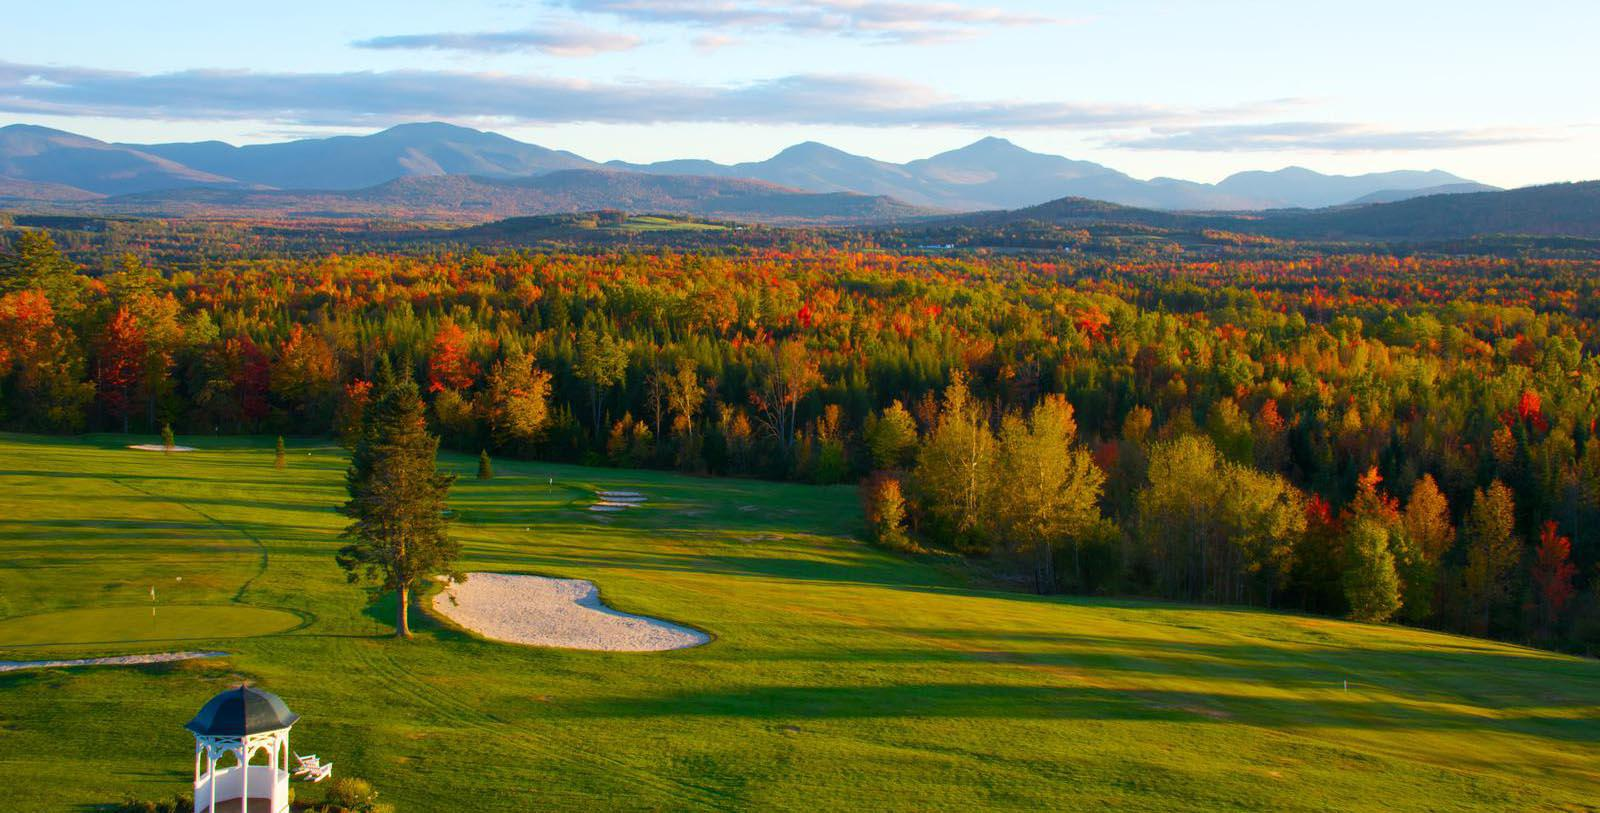 Image of Golf Course & Autumn Landscape, Mountain View Grand Resort & Spa in Whitefield, New Hampshire, 1865, Member of Historic Hotels of America, Explore